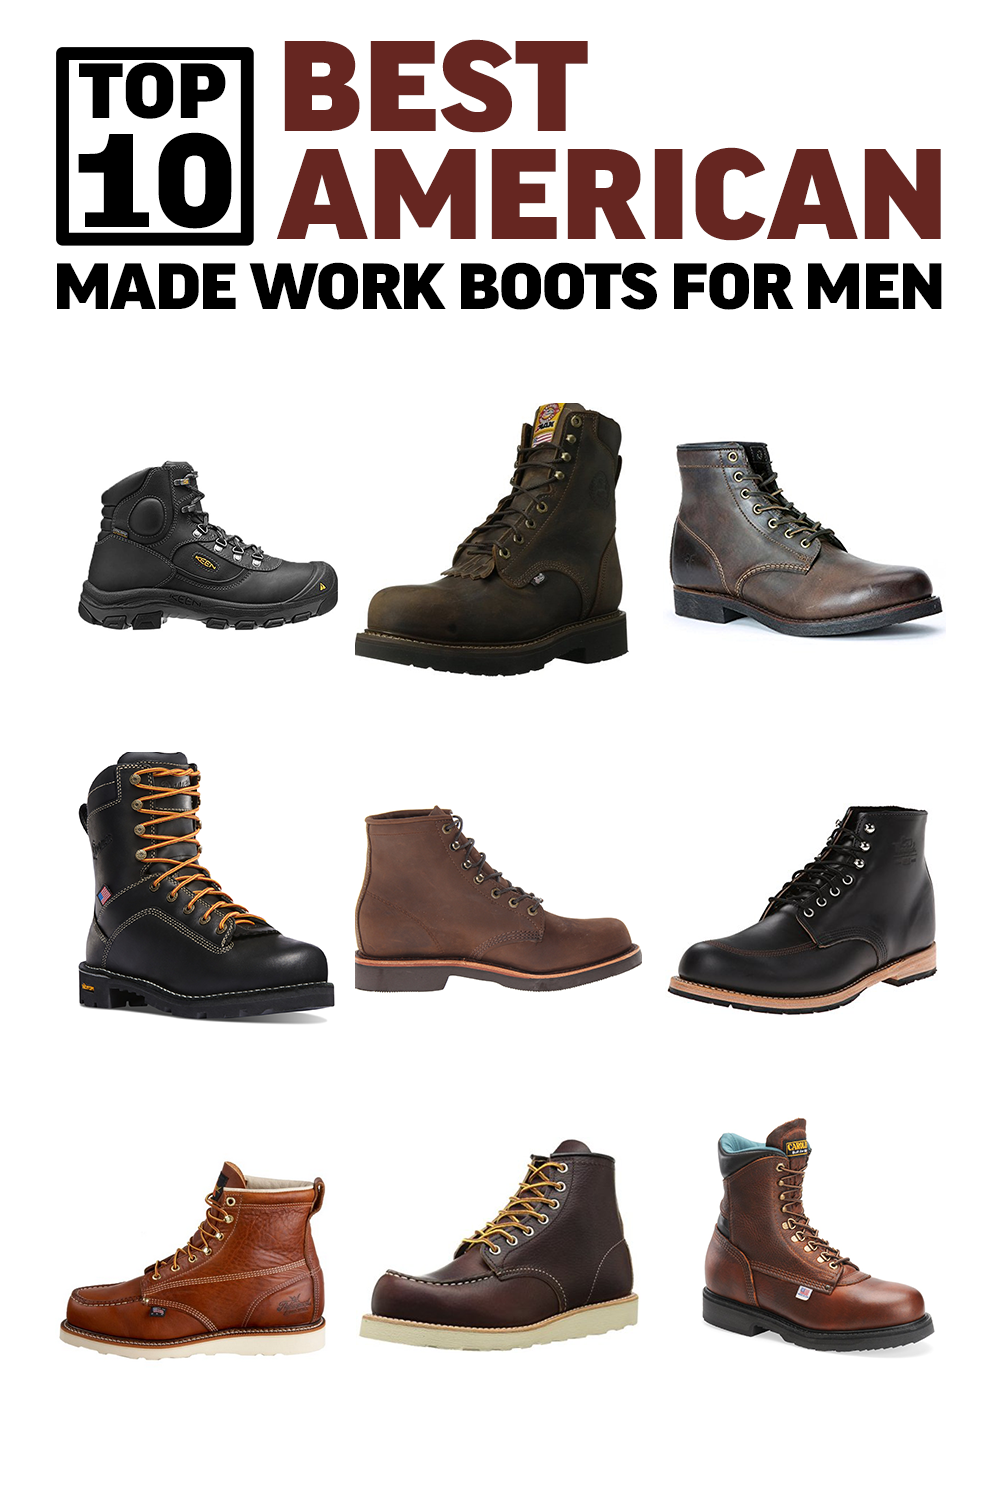 Top 10 Boots For Men